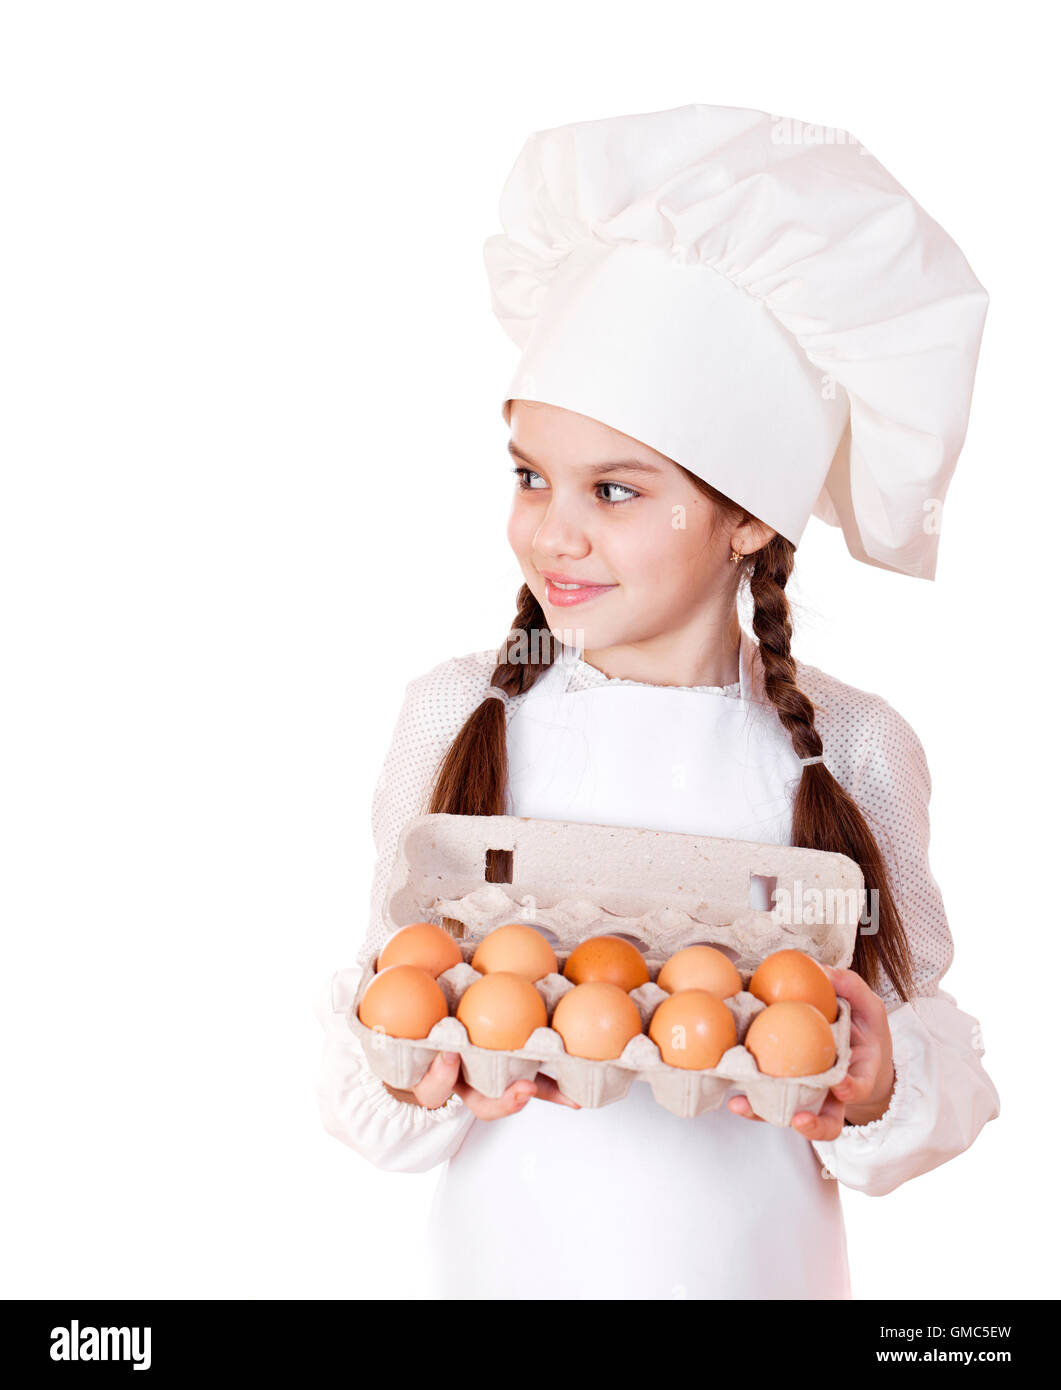 White apron girl - Portrait Of A Little Girl In A White Apron Holding Box Of Raw Eggs Isolated On White Background